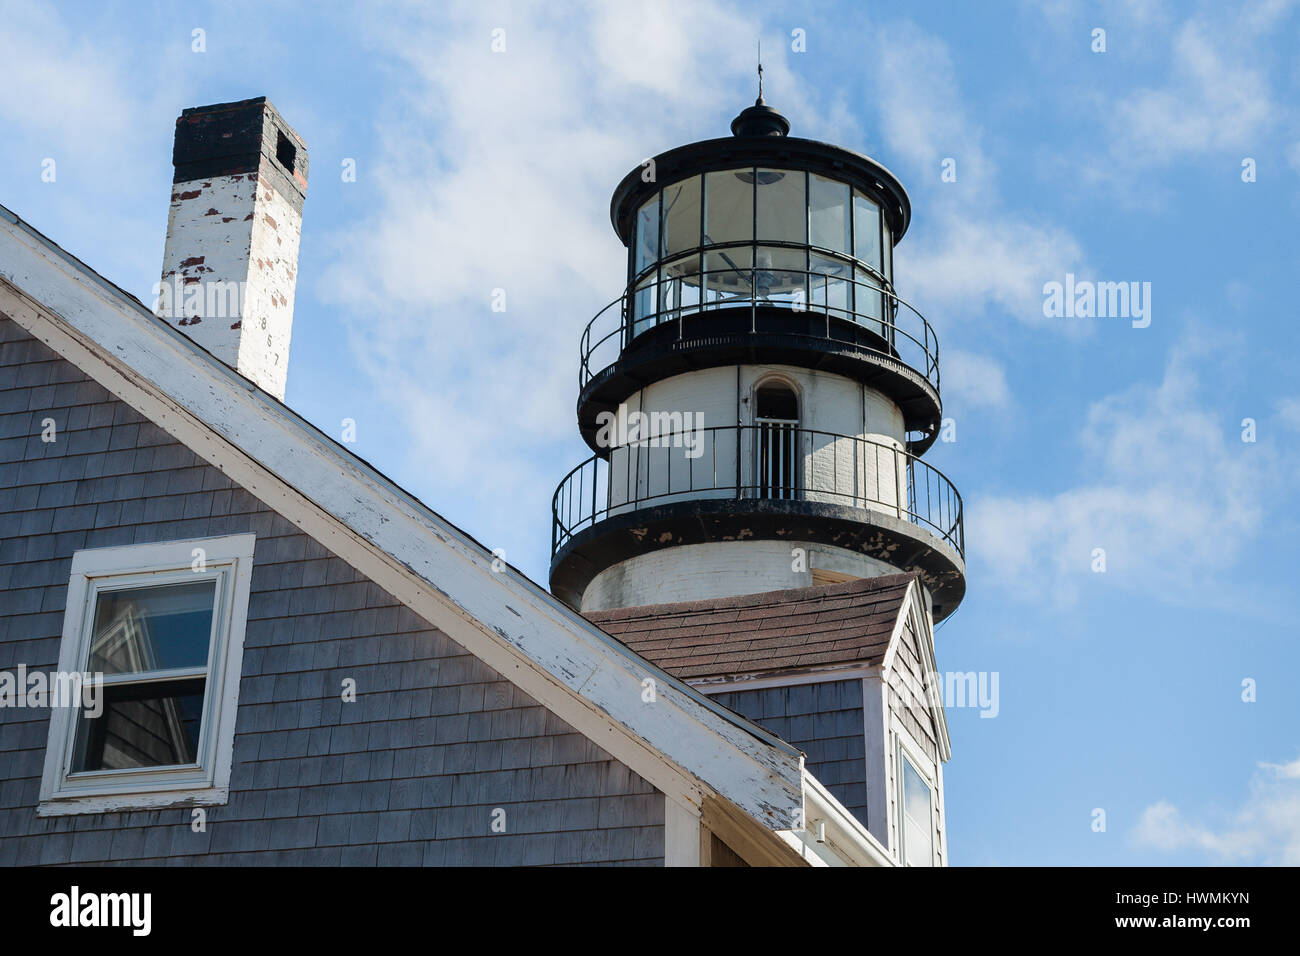 TRURO-SEPTEMBER 14: Truro lighthouse architecture with blue sky and clouds in Truro,  Cape Cod , Massachusetts, - Stock Image